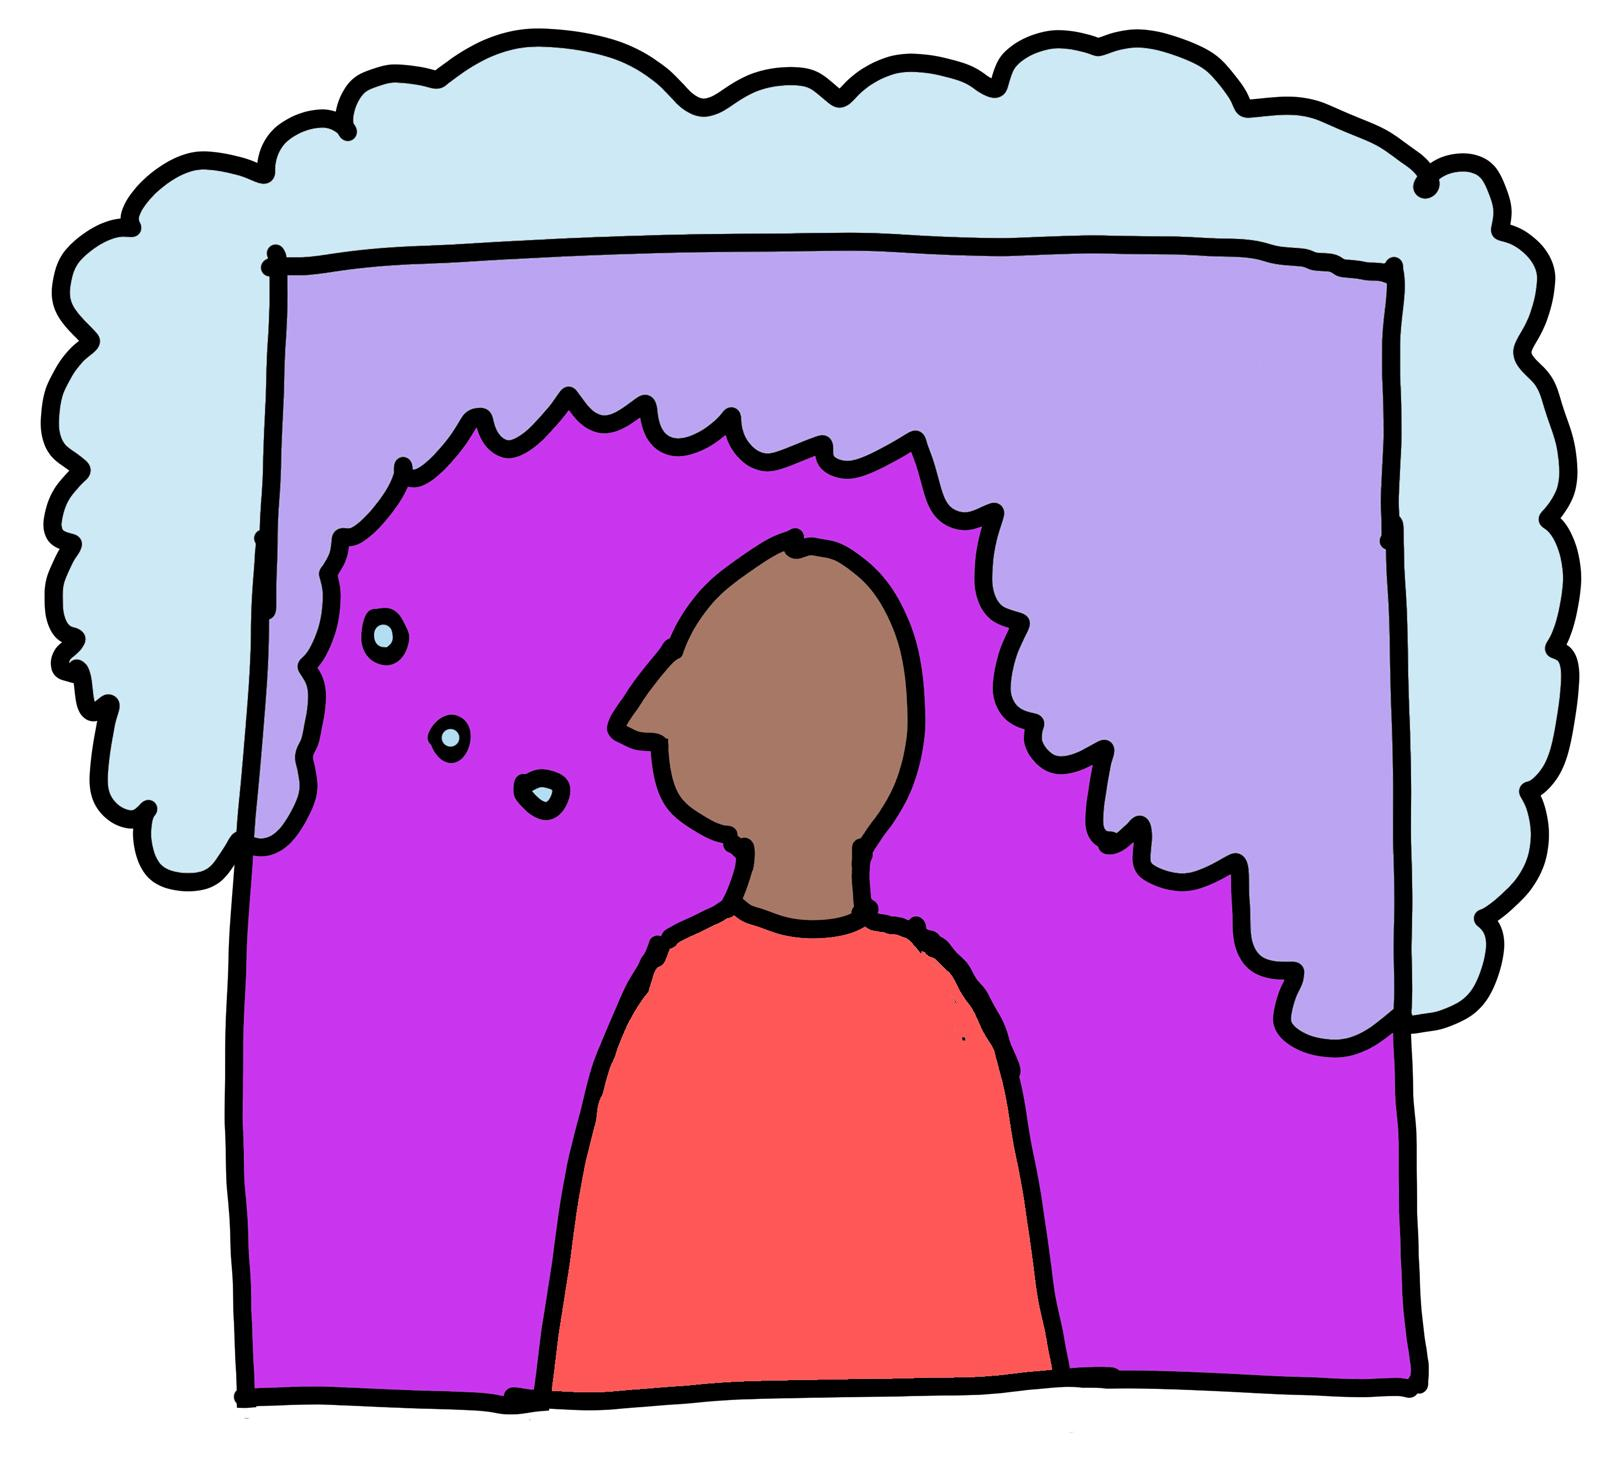 A simplistic drawing shows a dark-skinned person with a large thought bubble.